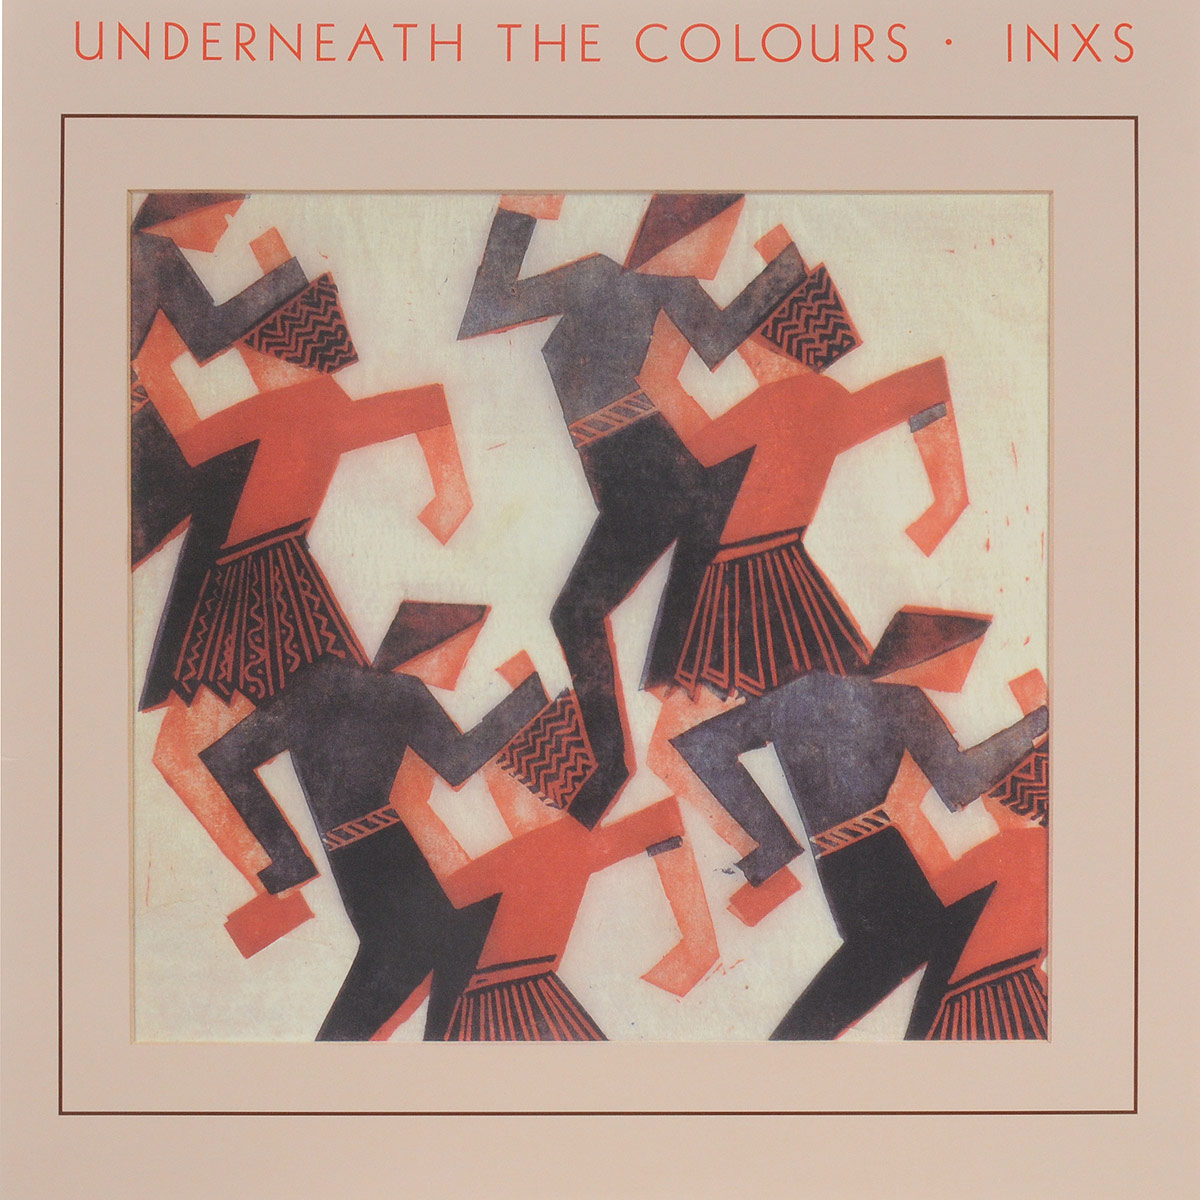 INXS INXS. Underneath The Colours (LP) inxs inxs underneath the colours